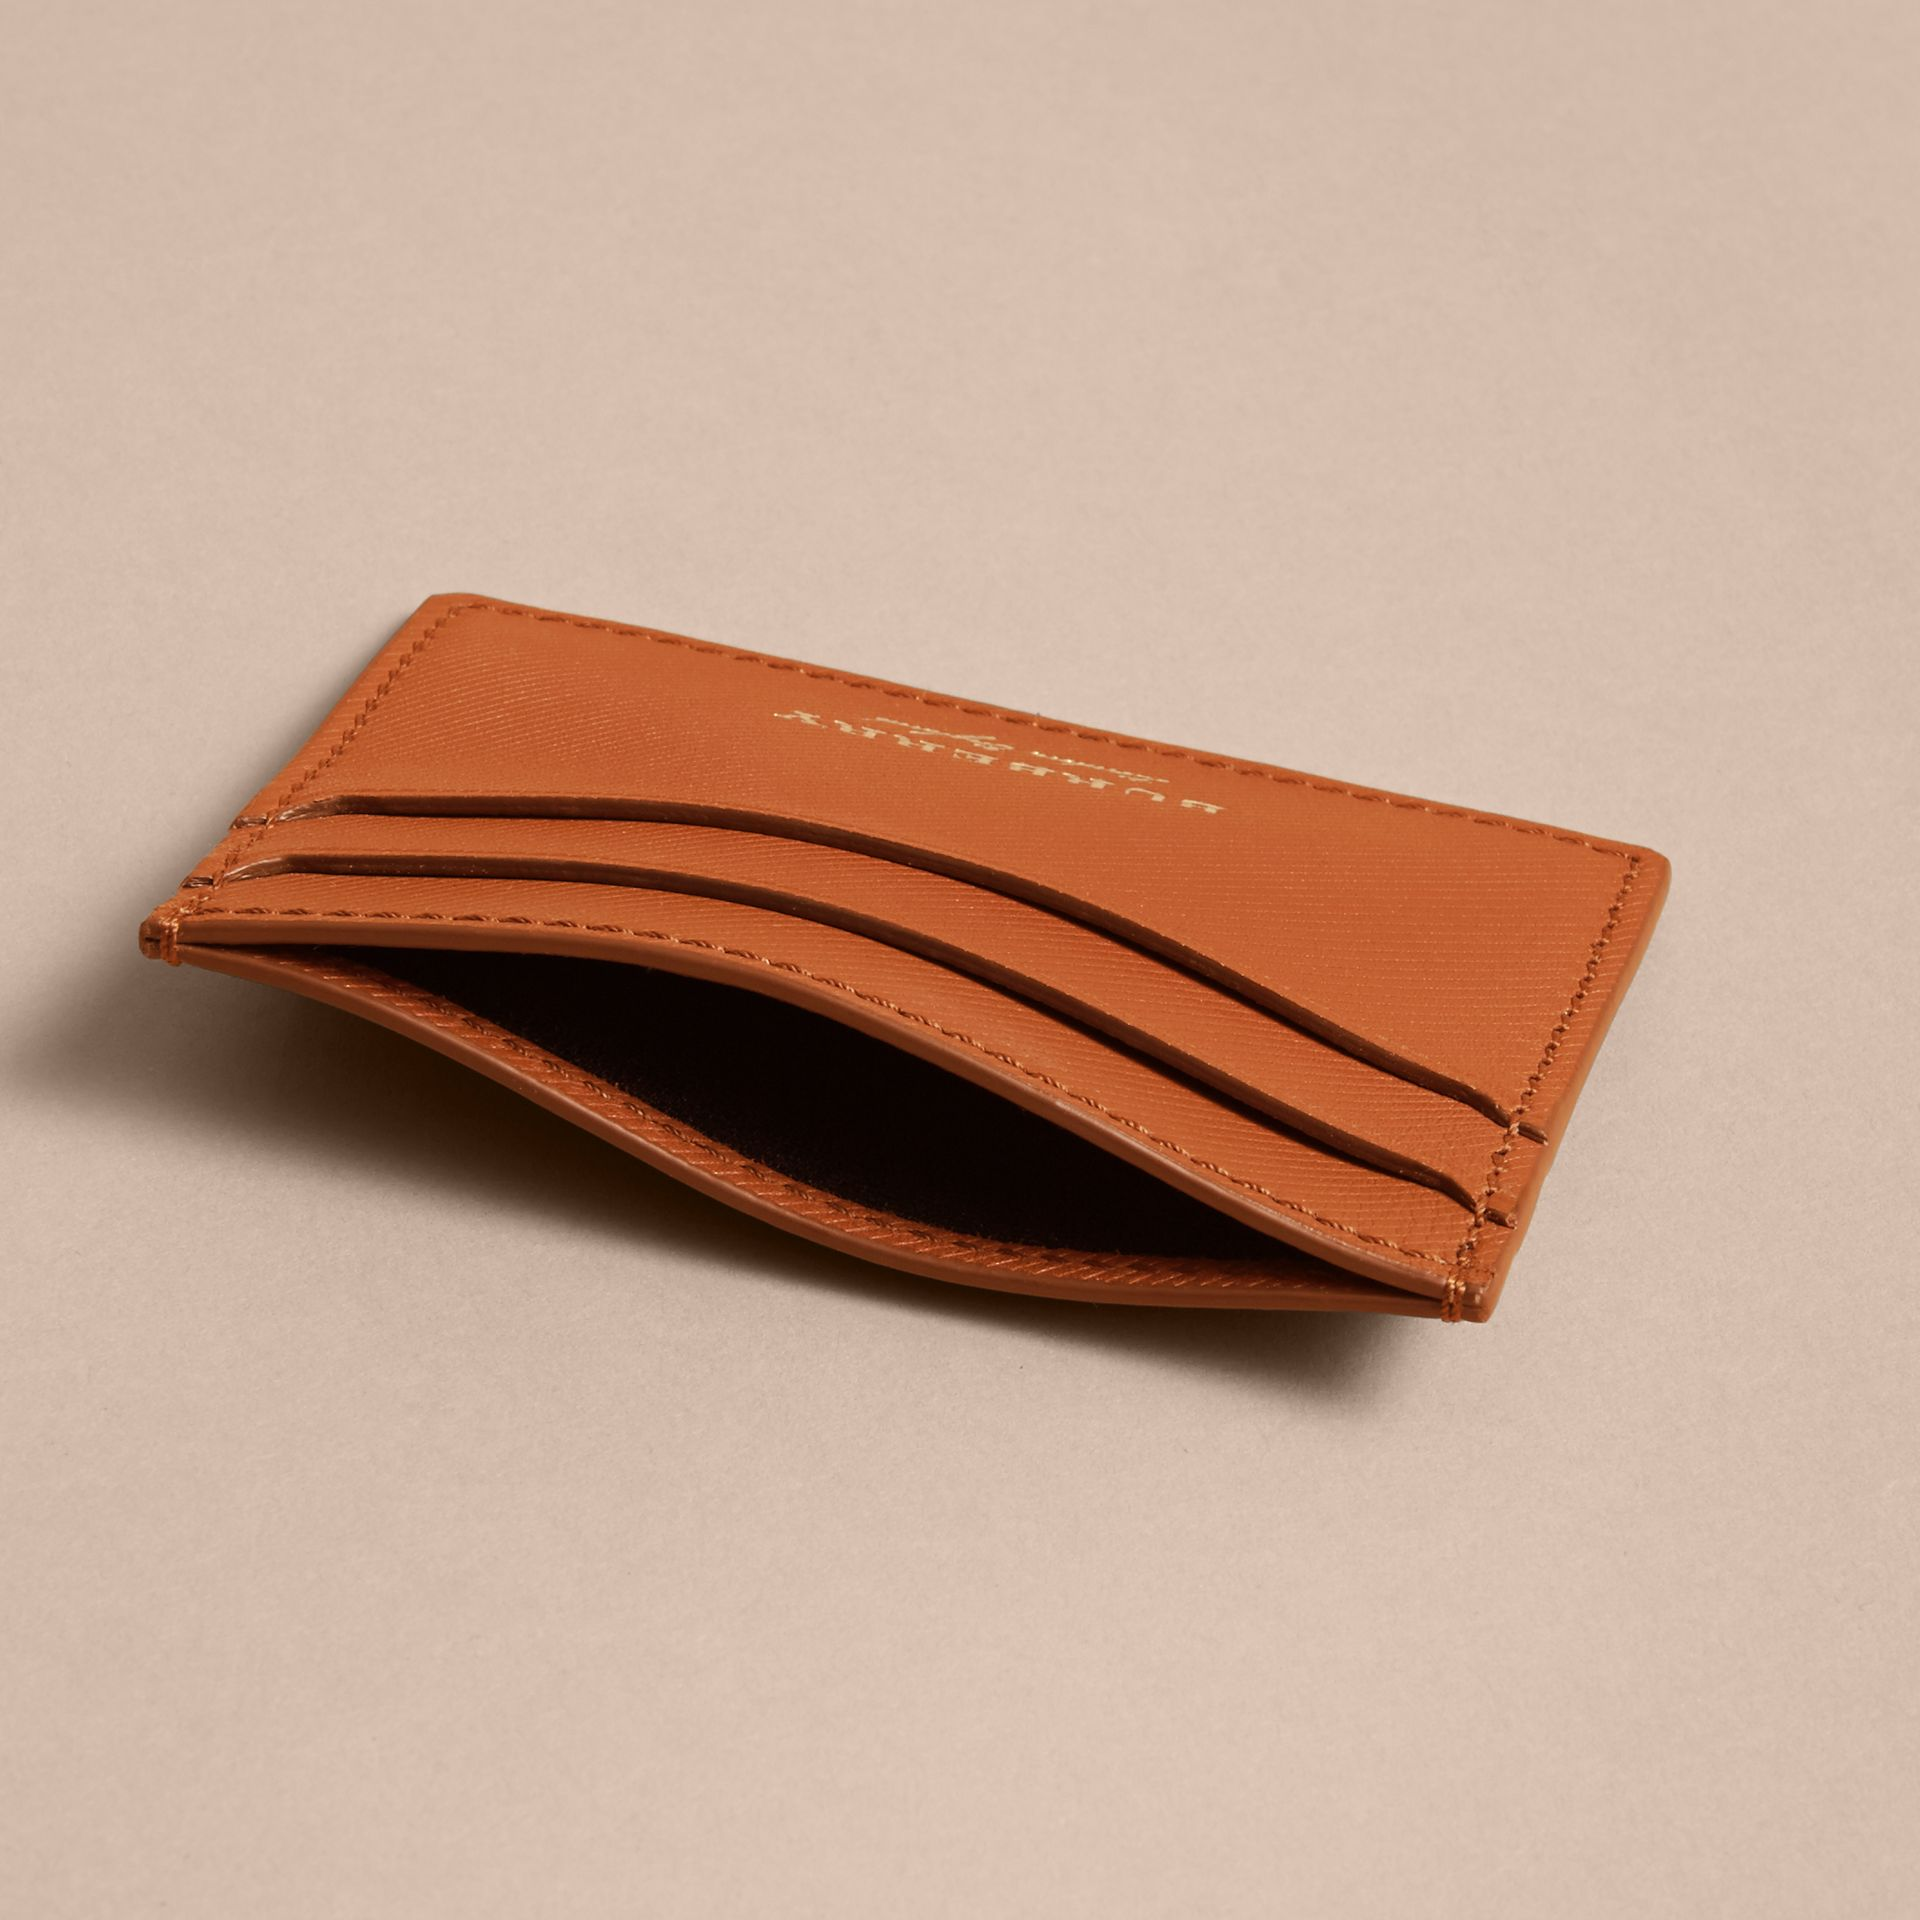 Trench Leather Card Case in Tan - Men | Burberry Australia - gallery image 5